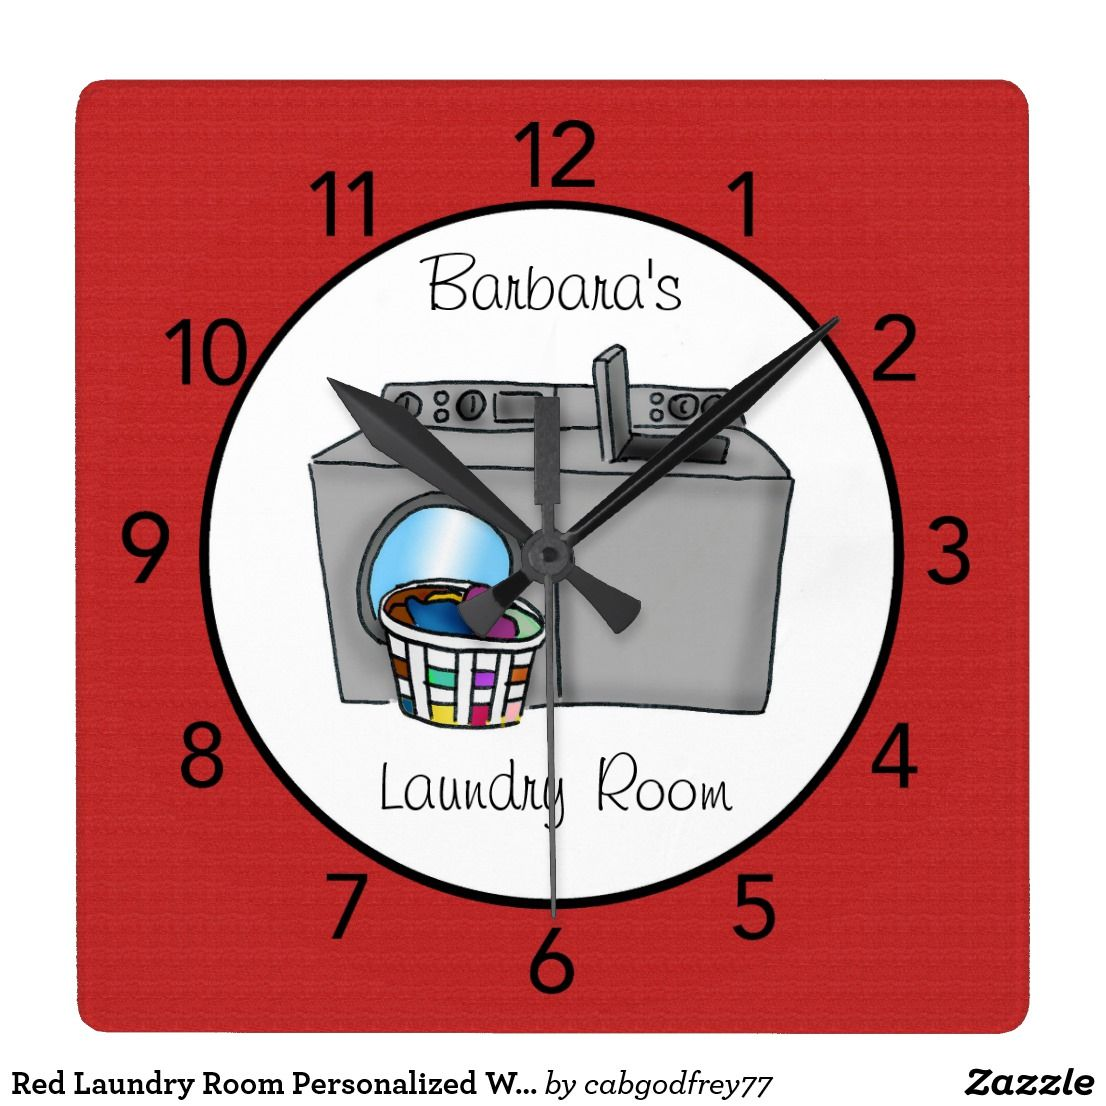 Red laundry room personalized wall clock clocks pinterest red laundry room personalized wall clock amipublicfo Images